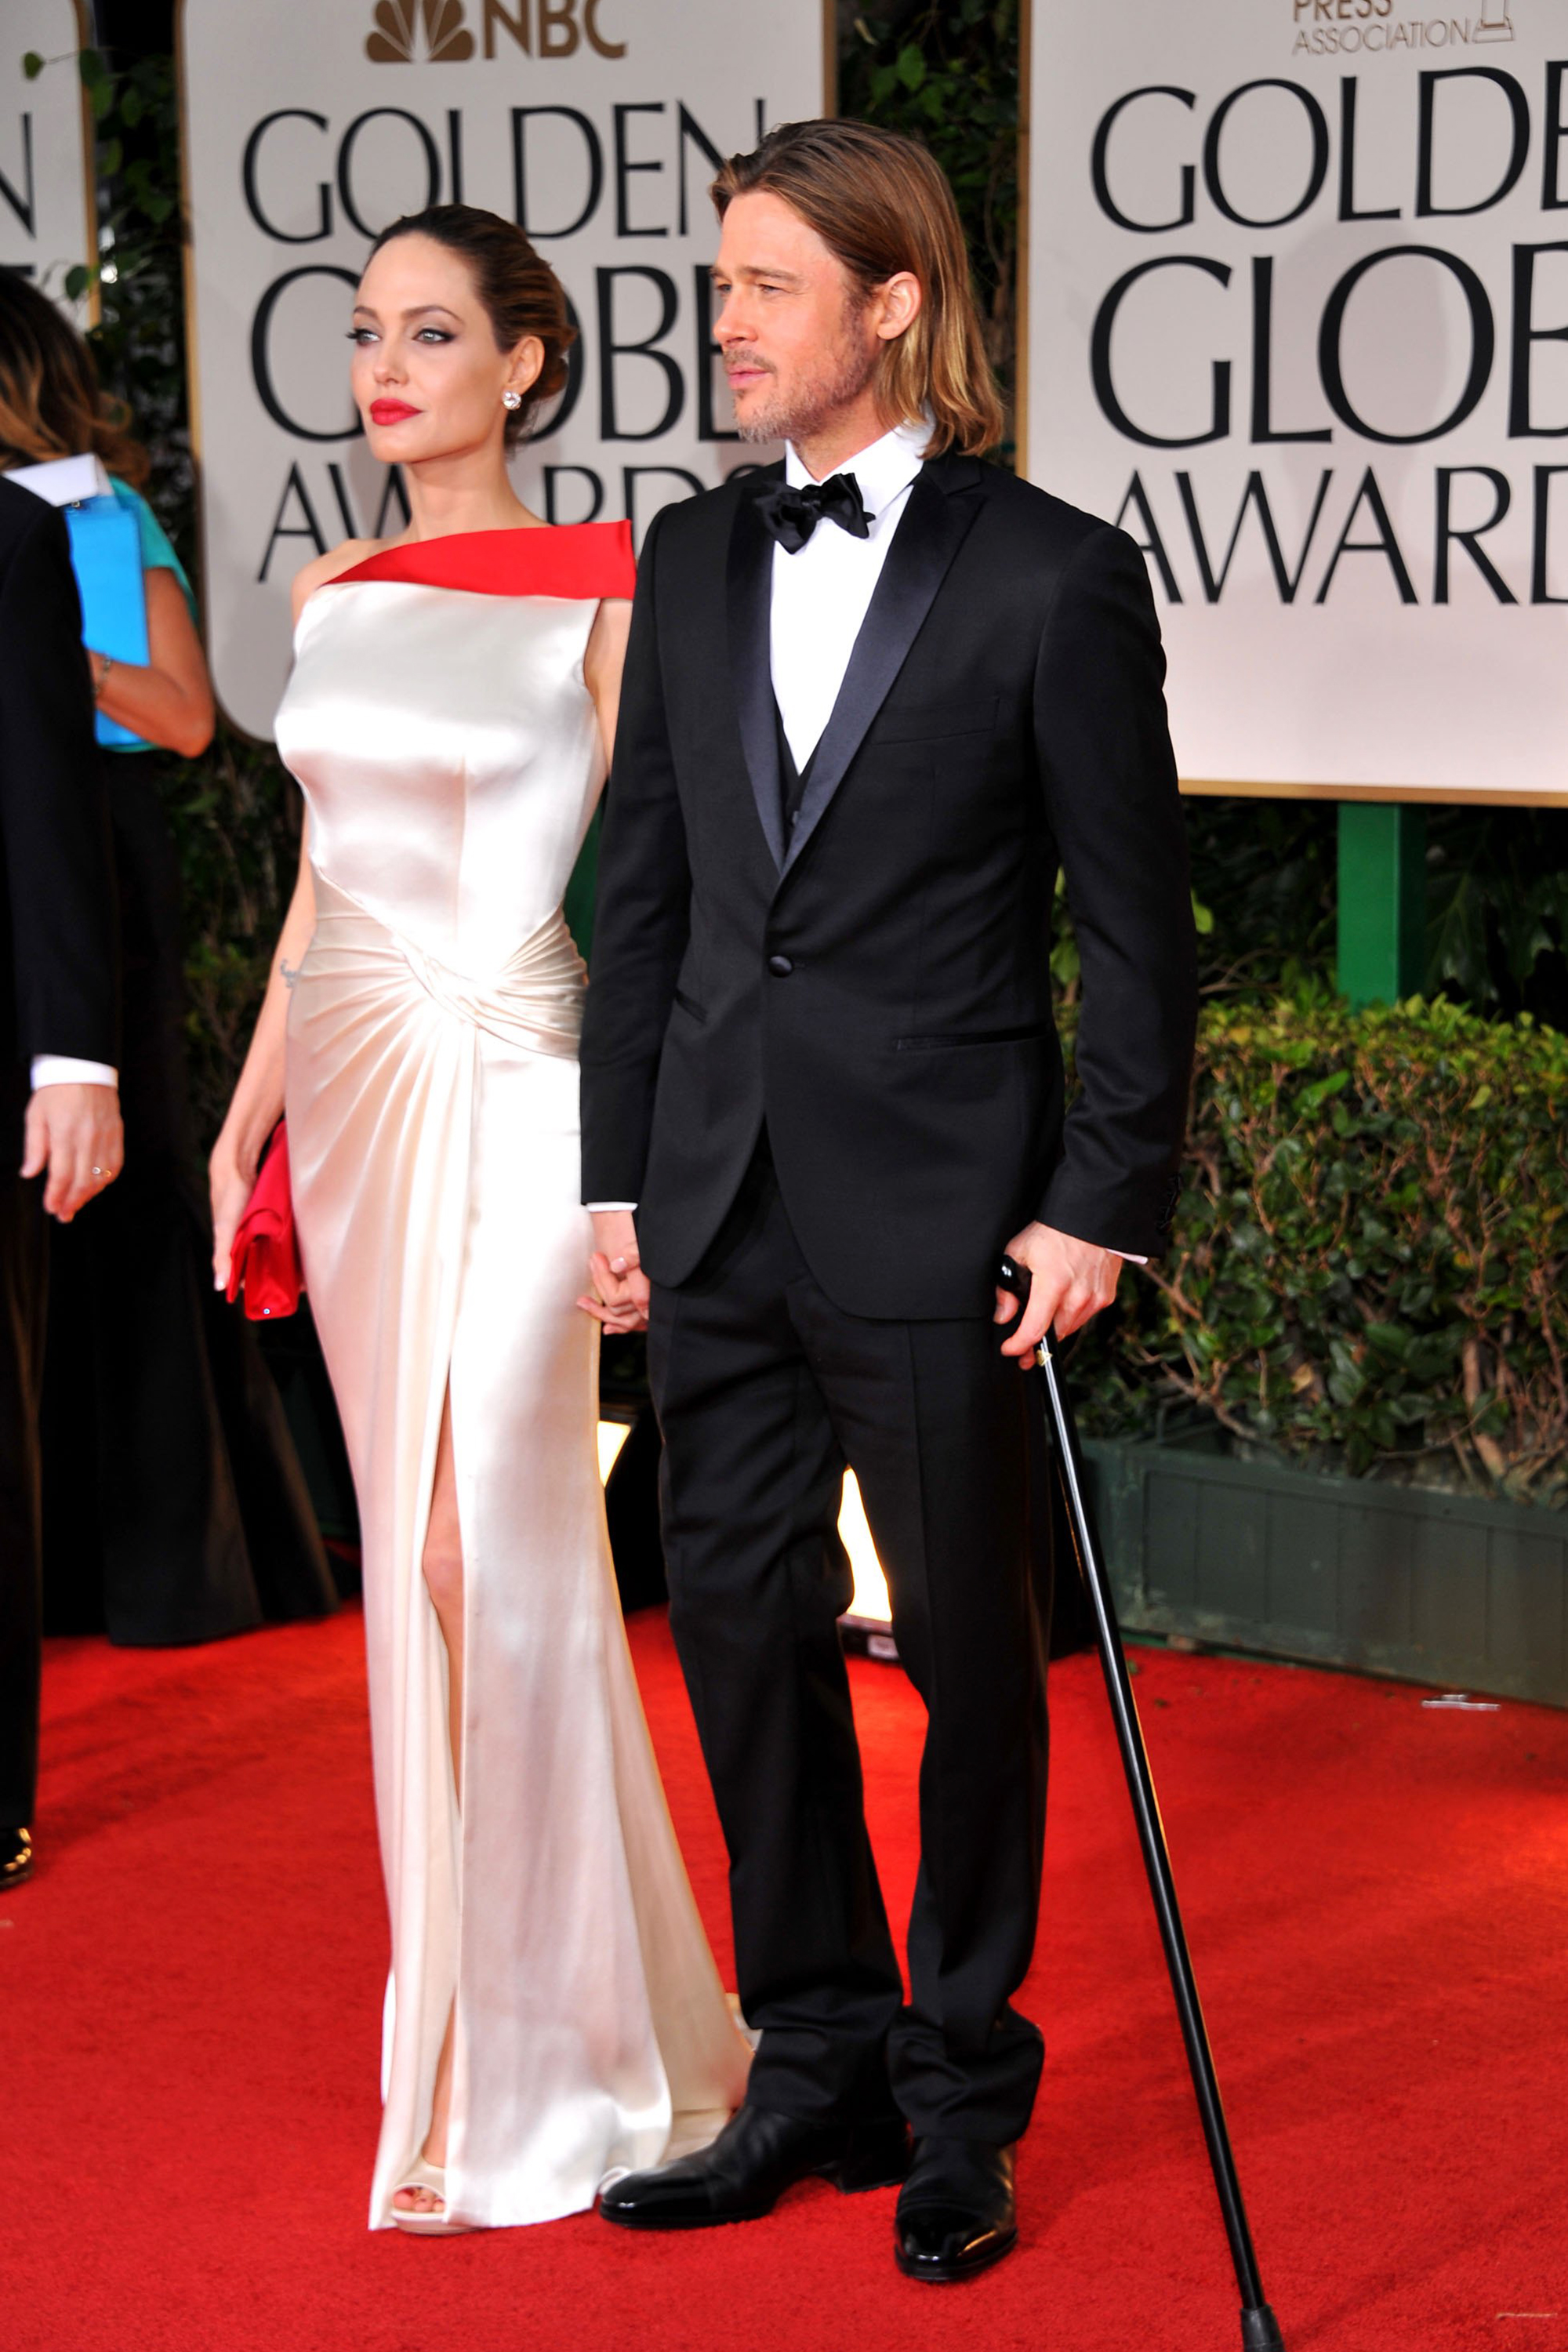 Angelina Jolie and Brad Pitt arrive at the 69th Annual Golden Globe Awards held on Jan. 15, 2012 in Beverly Hills, Calif.